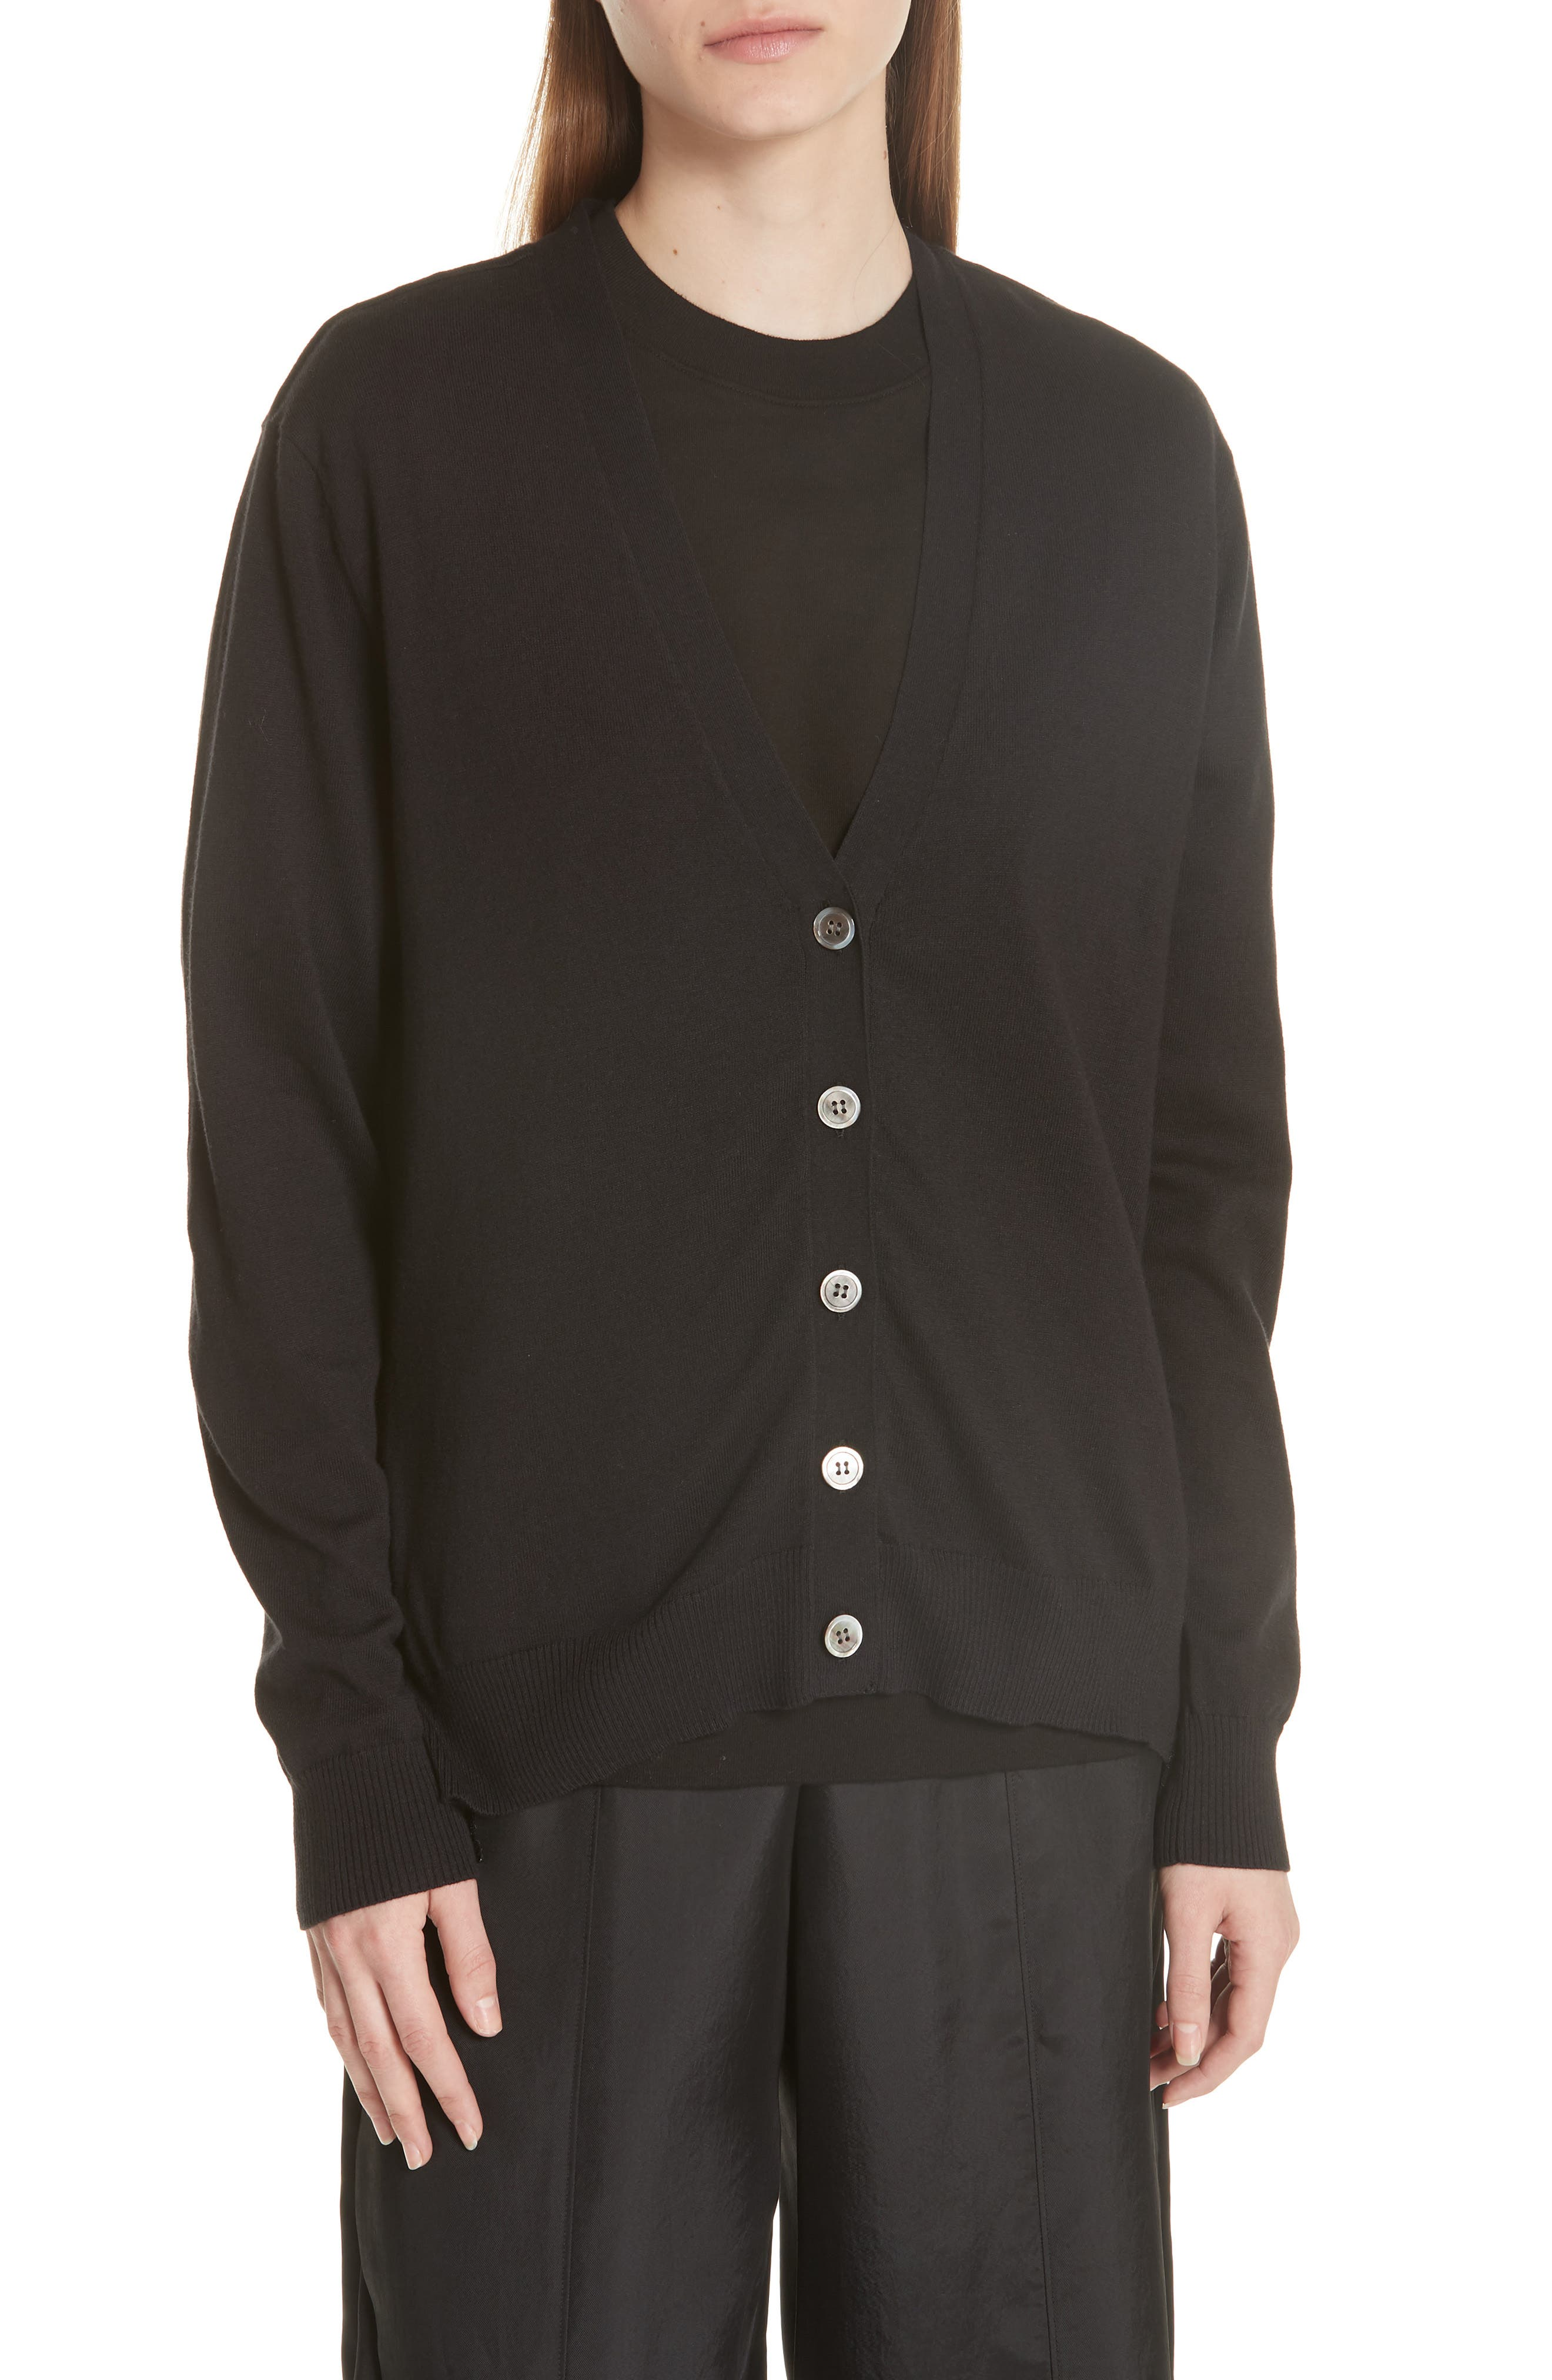 Pleat Back Cardigan,                         Main,                         color, Black